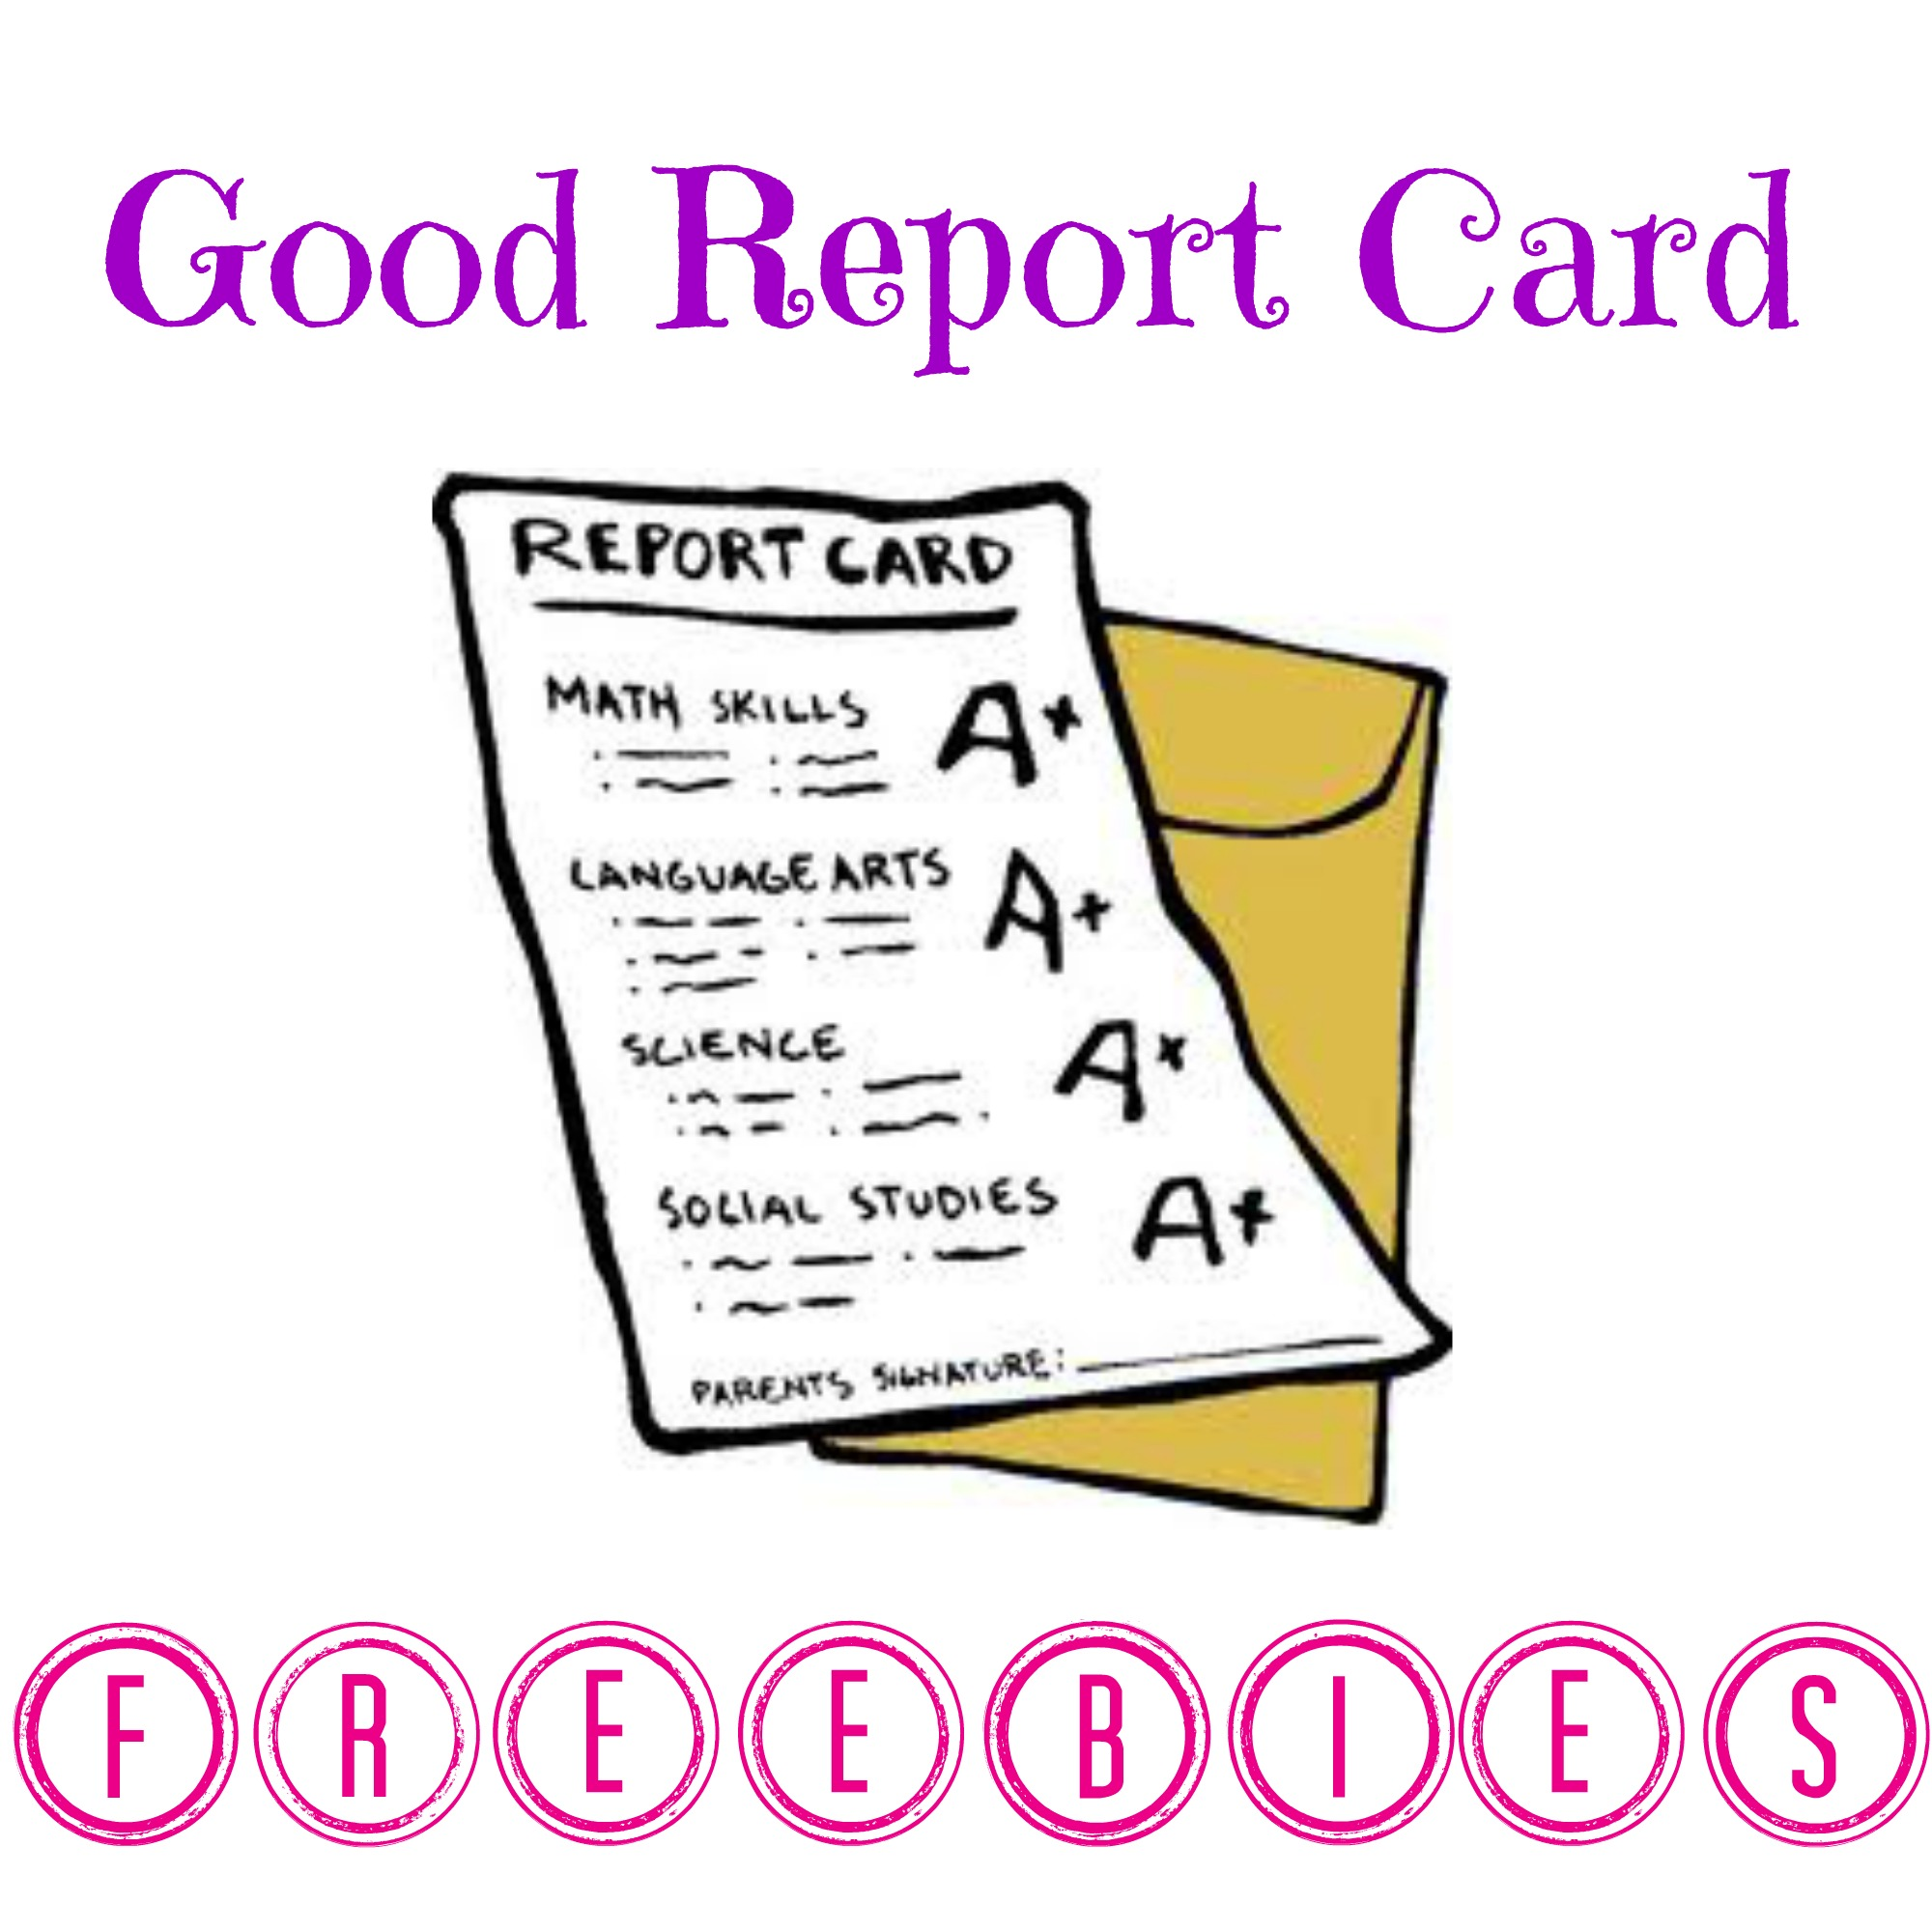 Printable coupons chuck e cheese coupons - Big List Of Good Report Card Freebies For Kids